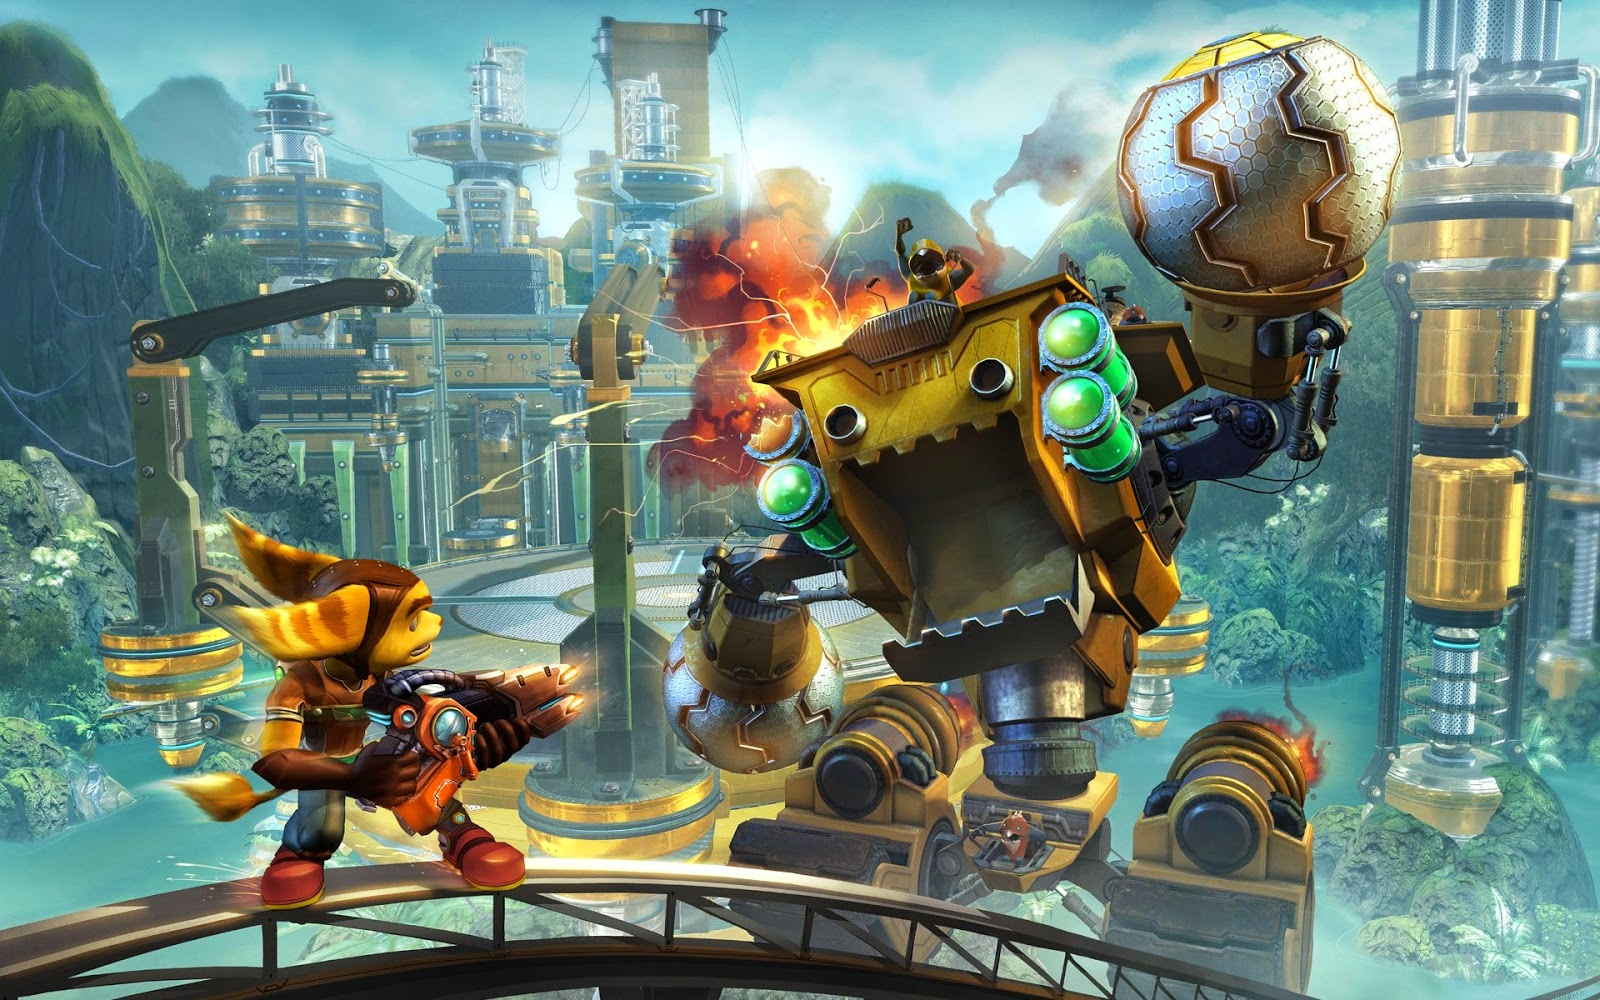 Ratchet & Clank Game Review